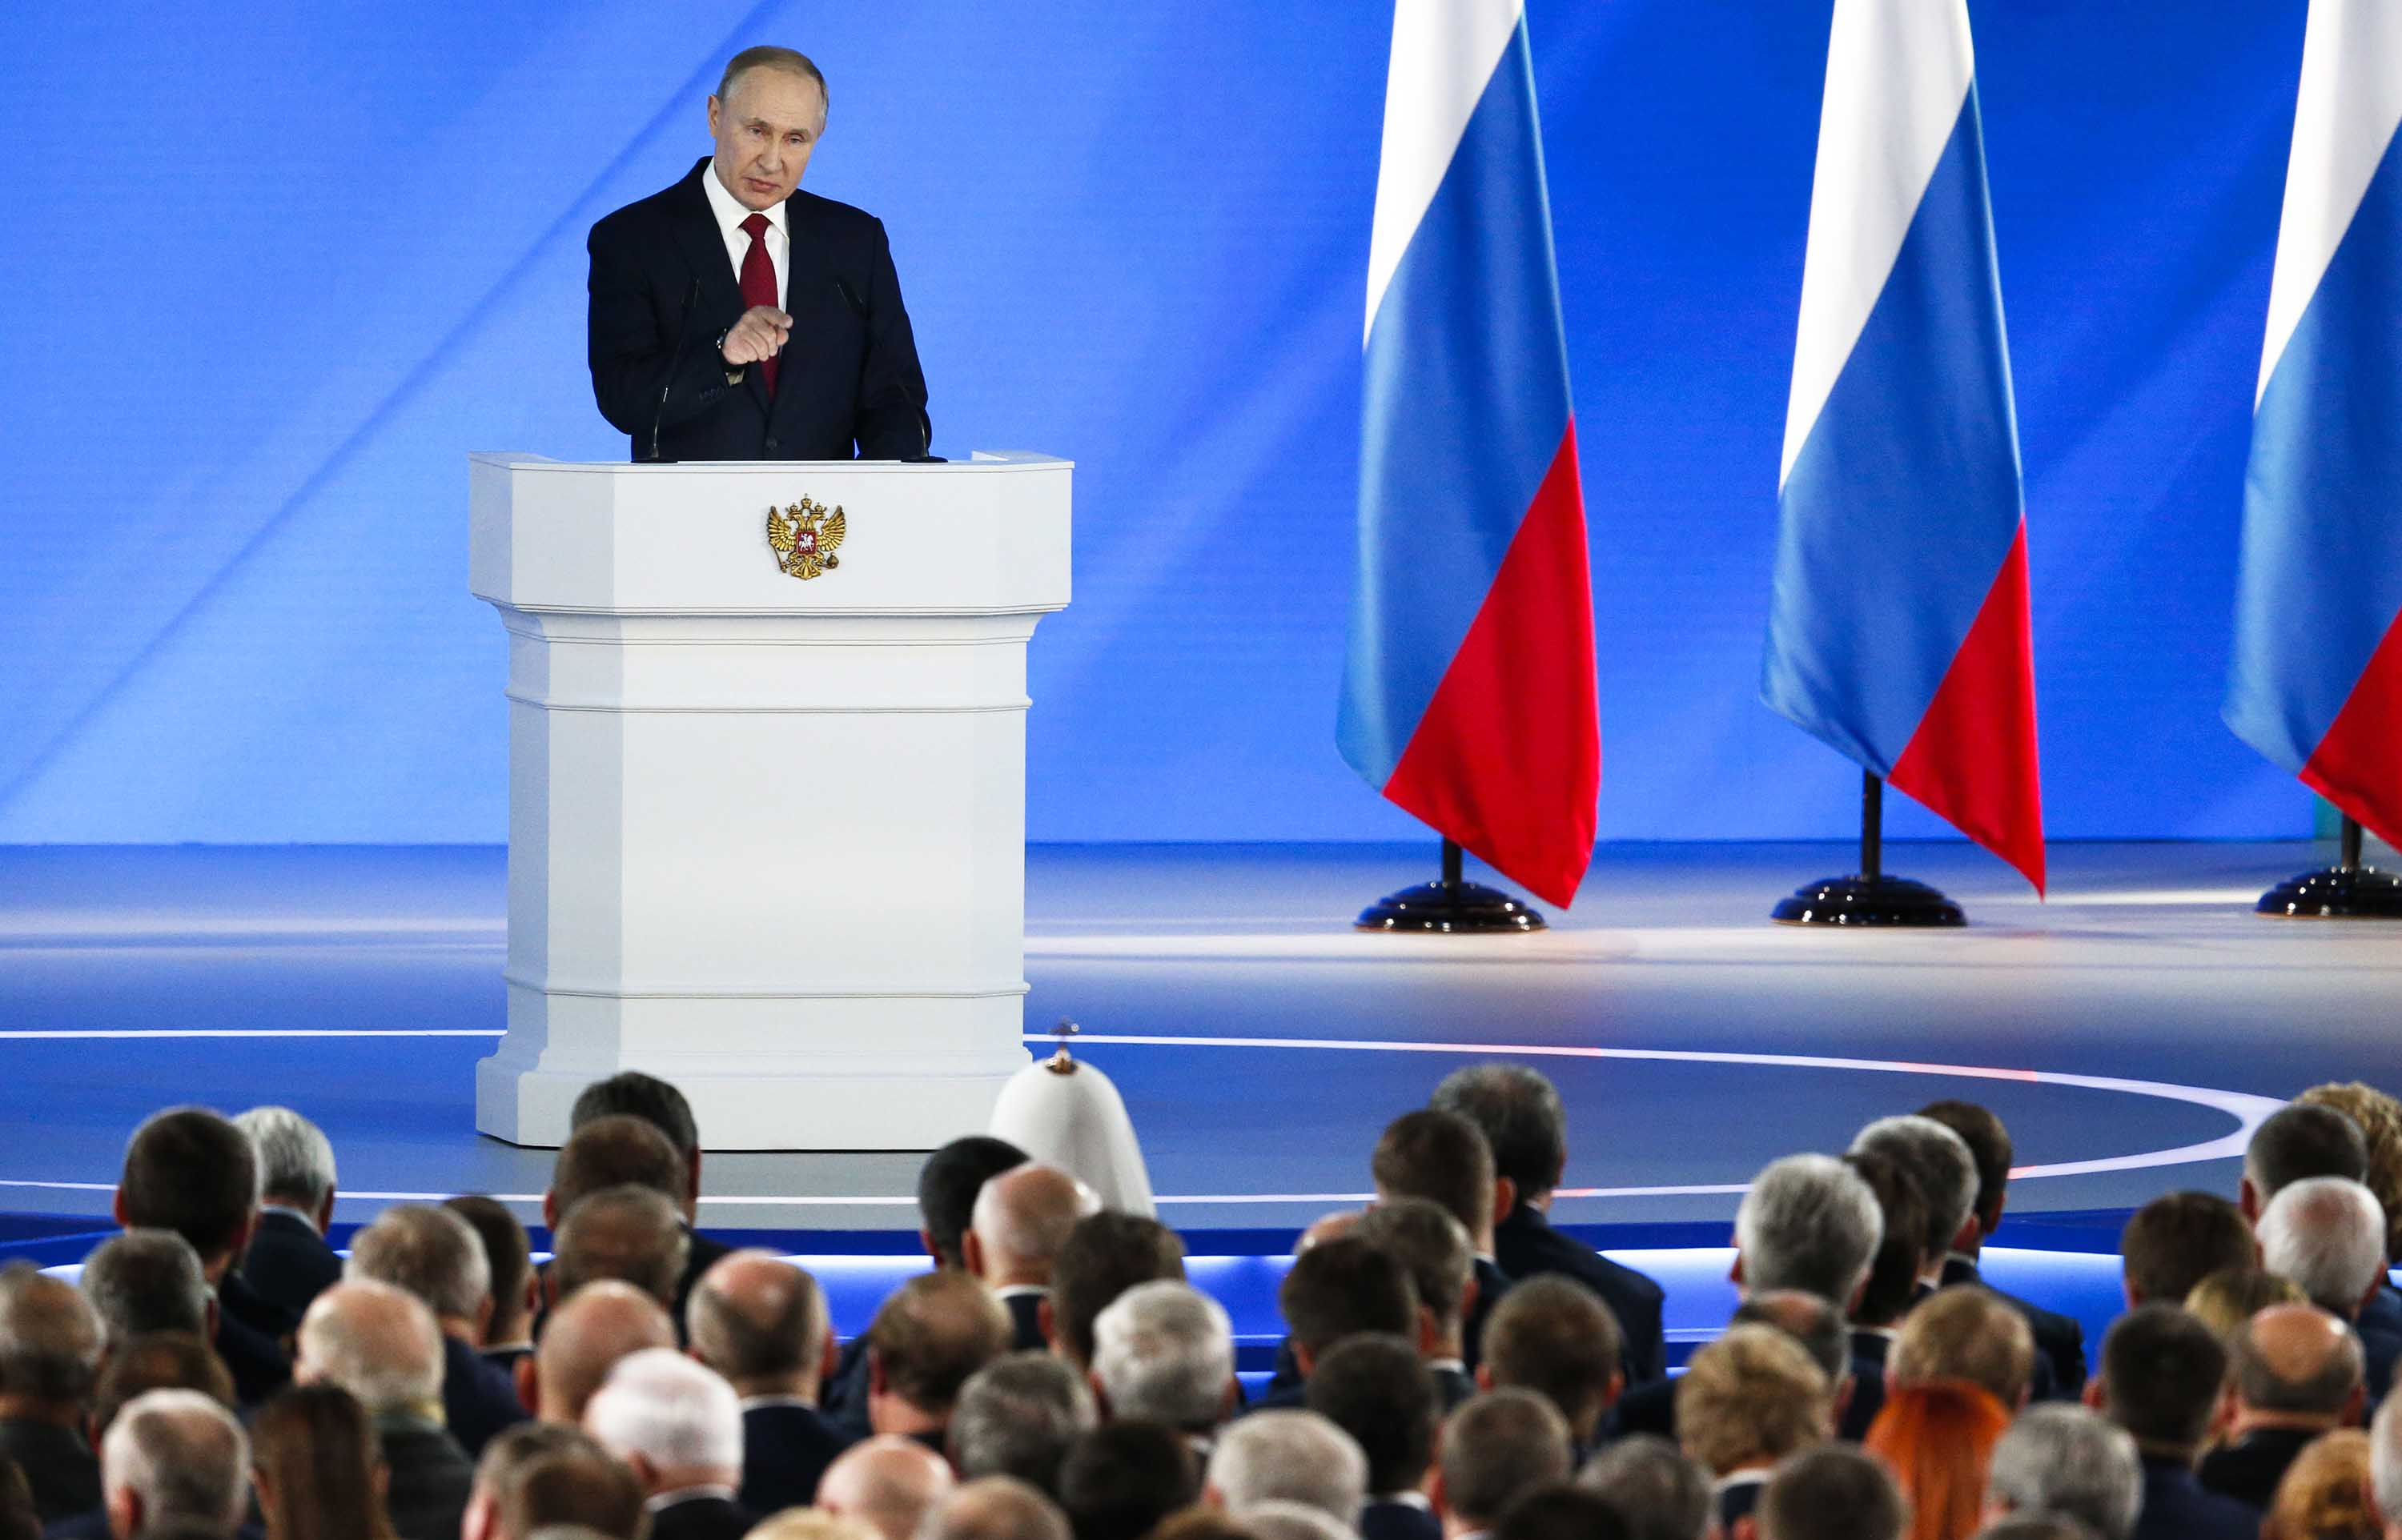 Putin addresses the State Council in Moscow on Wednesday.